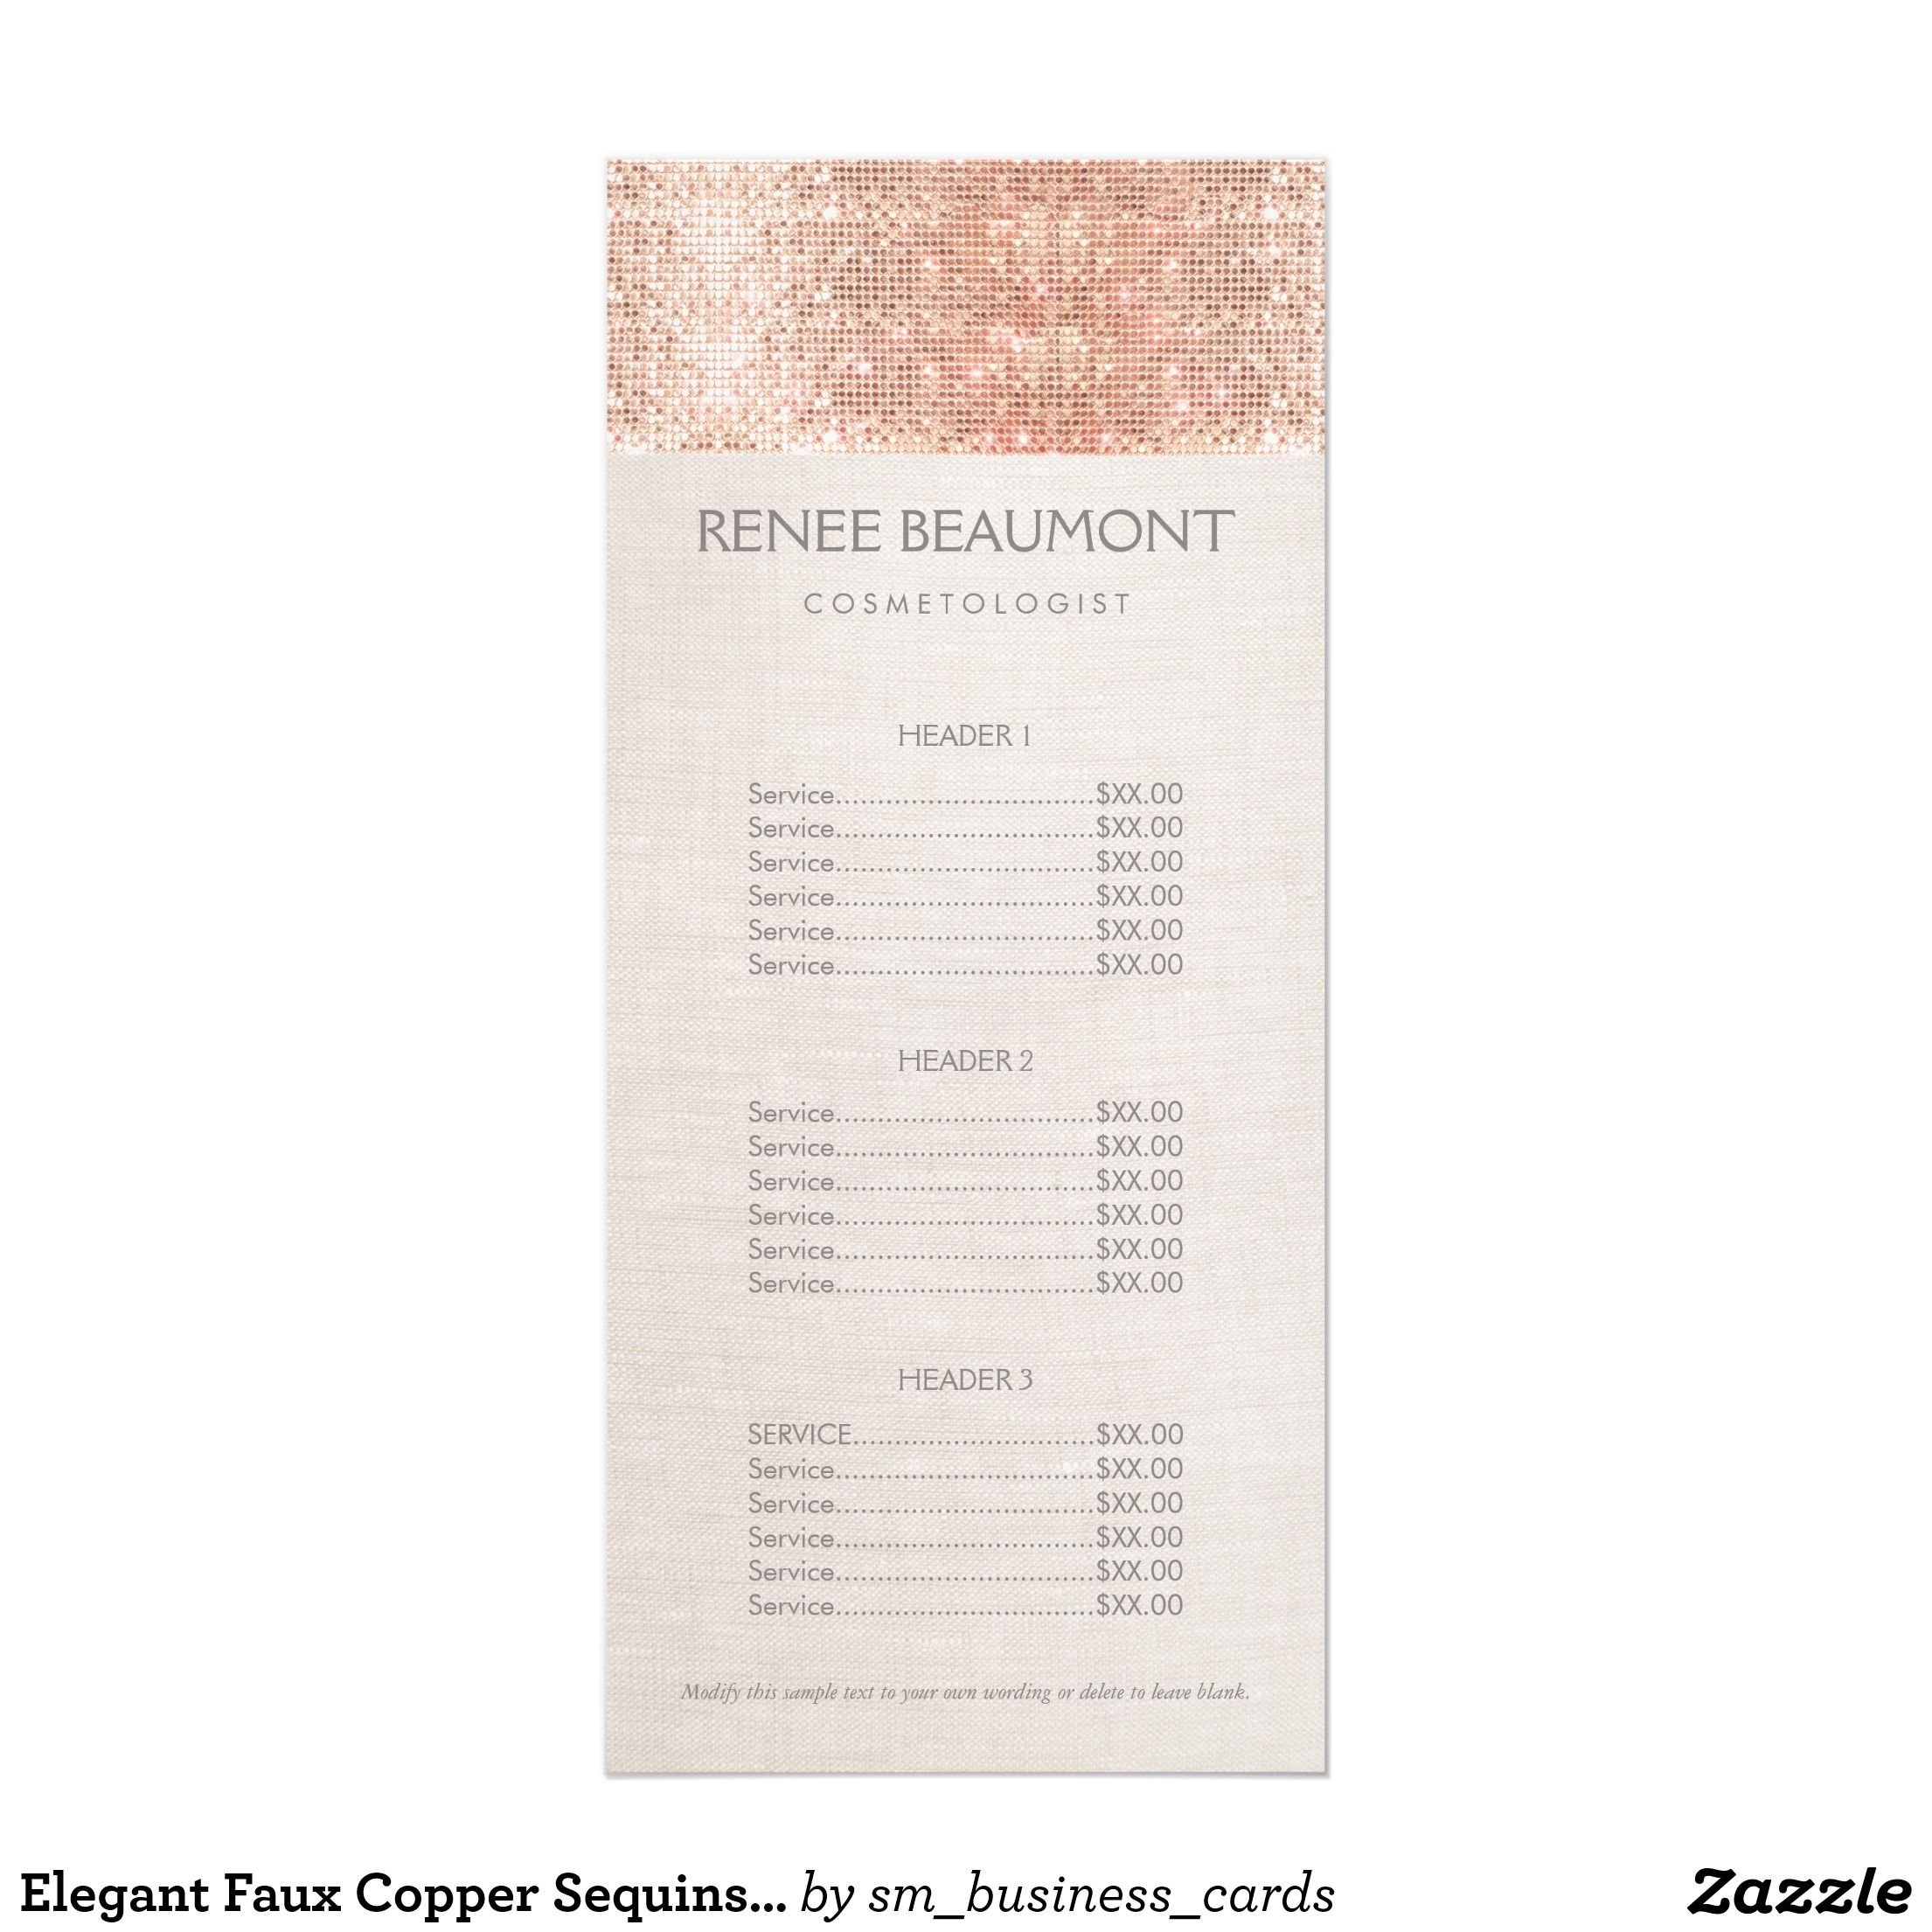 Elegant Faux Copper Sequins Salon Price List Menu Zazzle